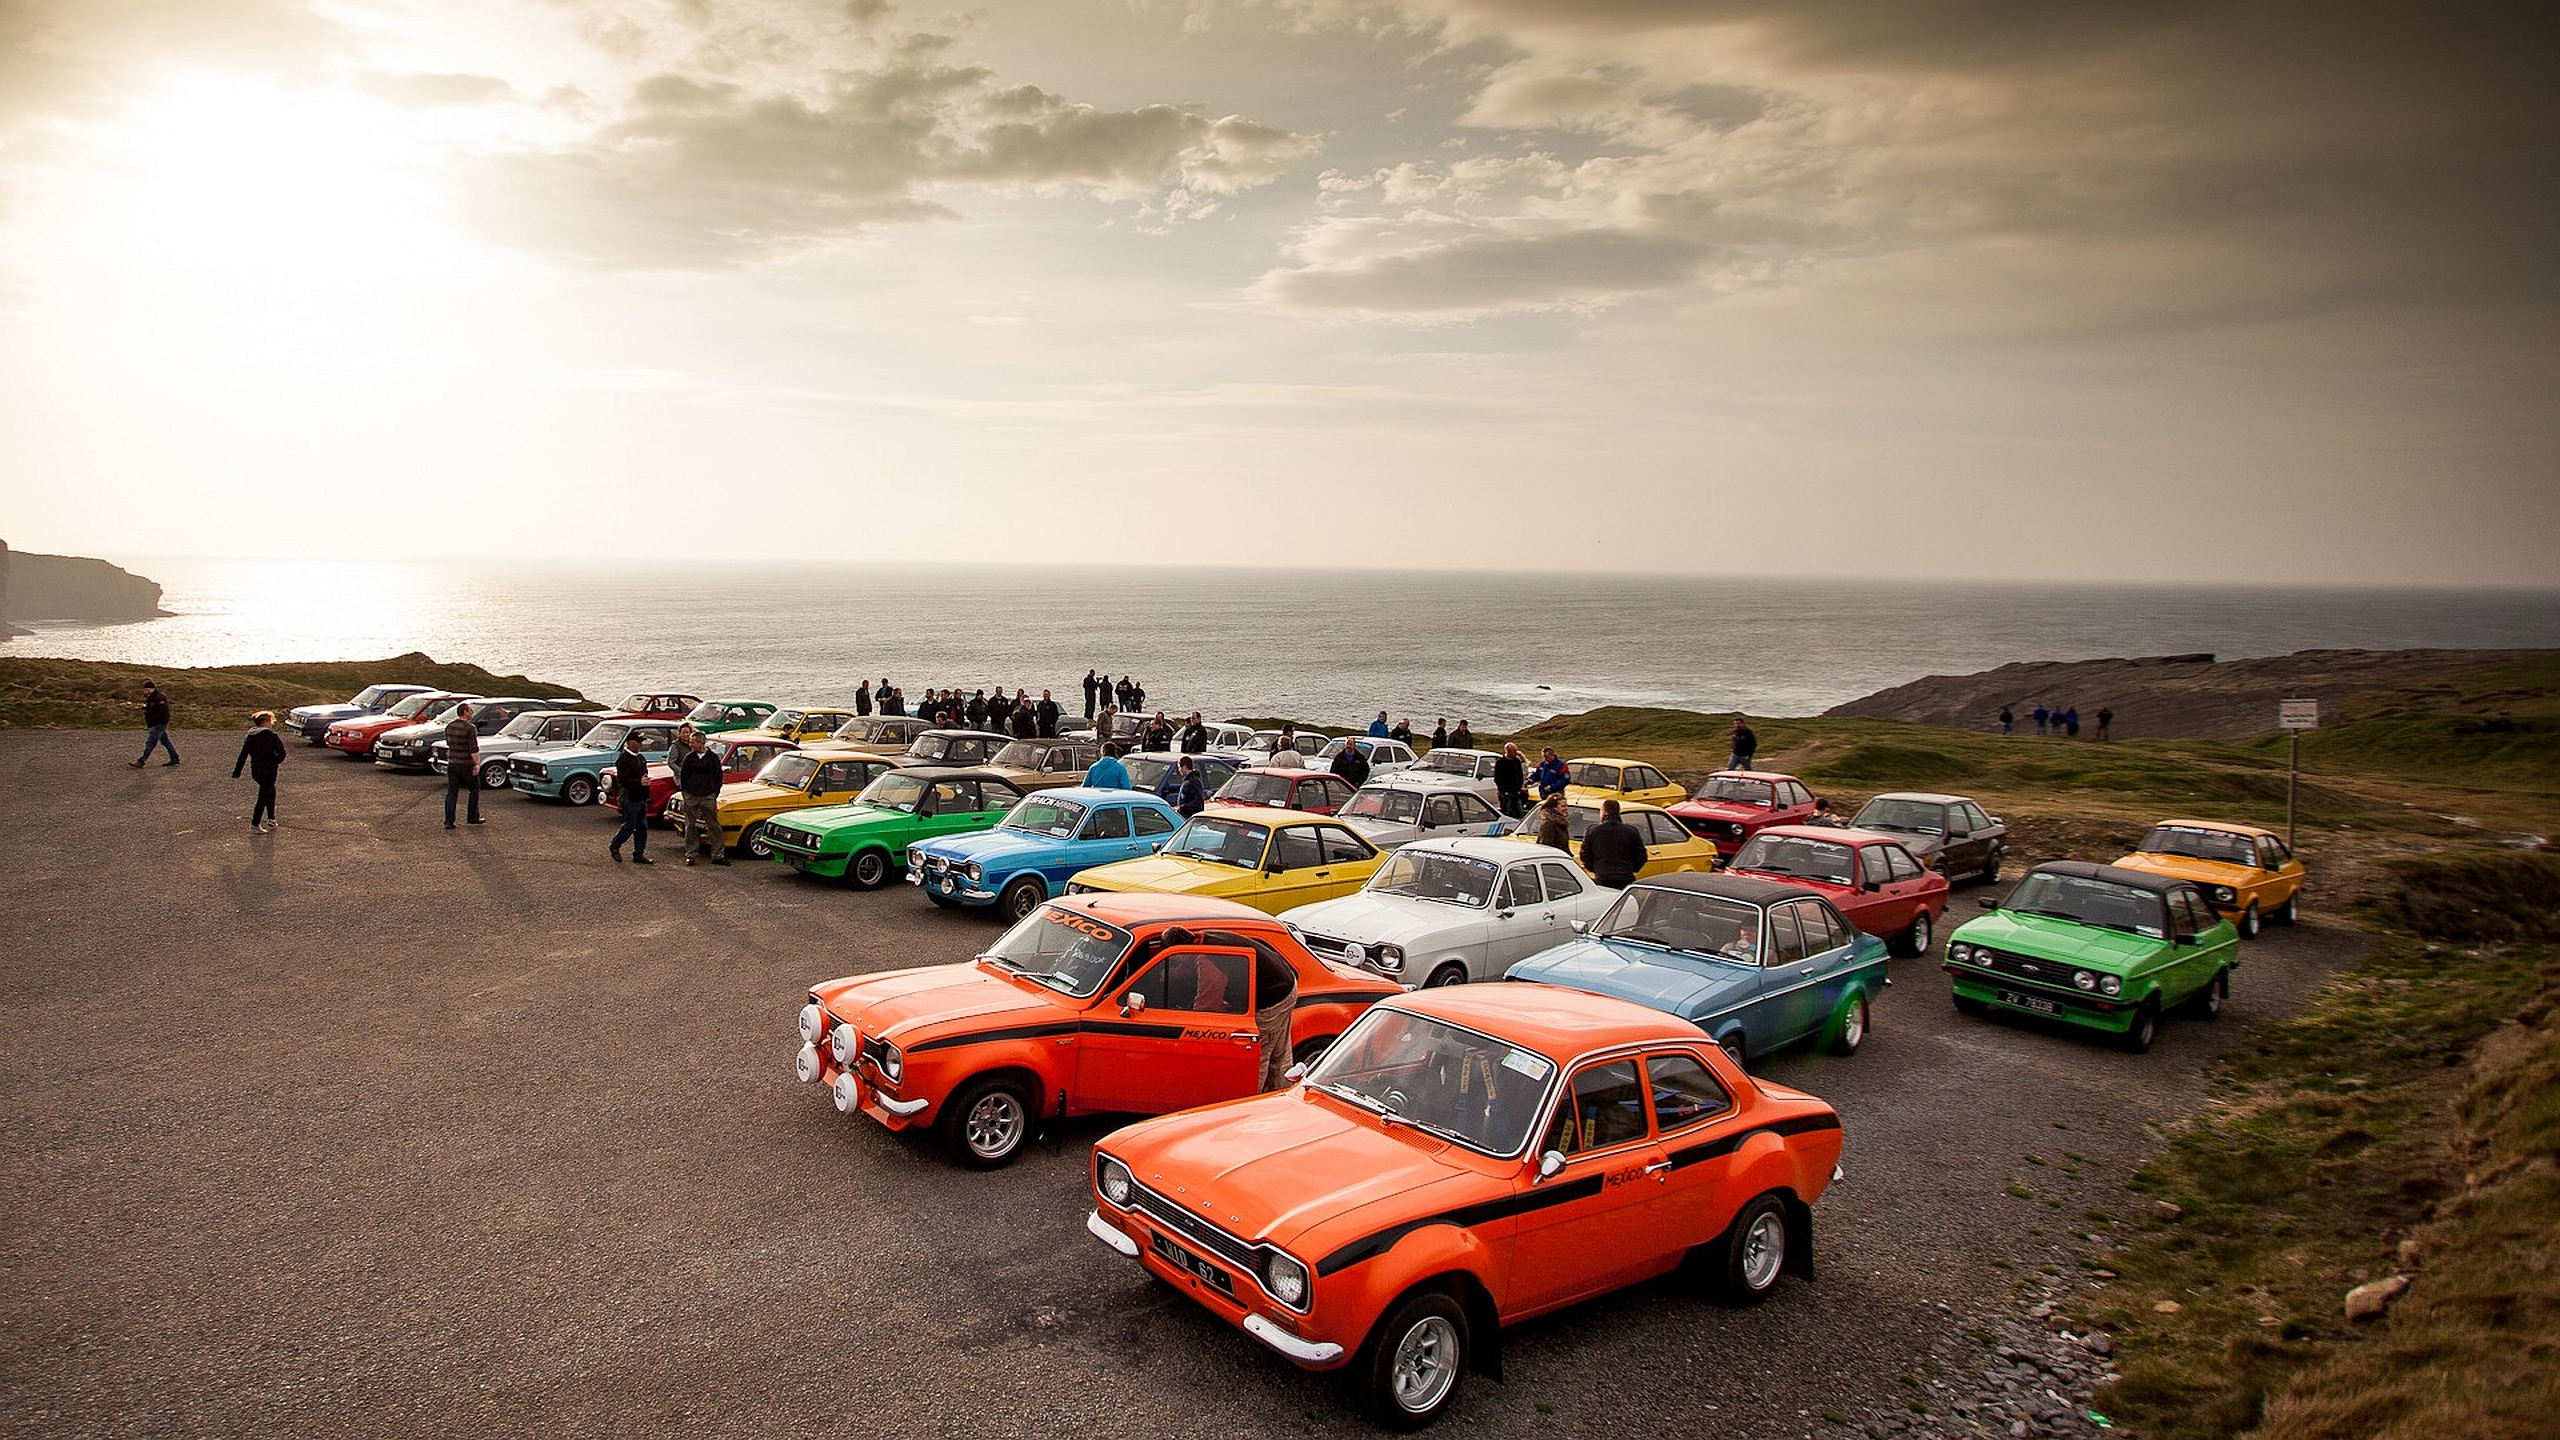 2560x1440 - Ford Escort Wallpapers 7